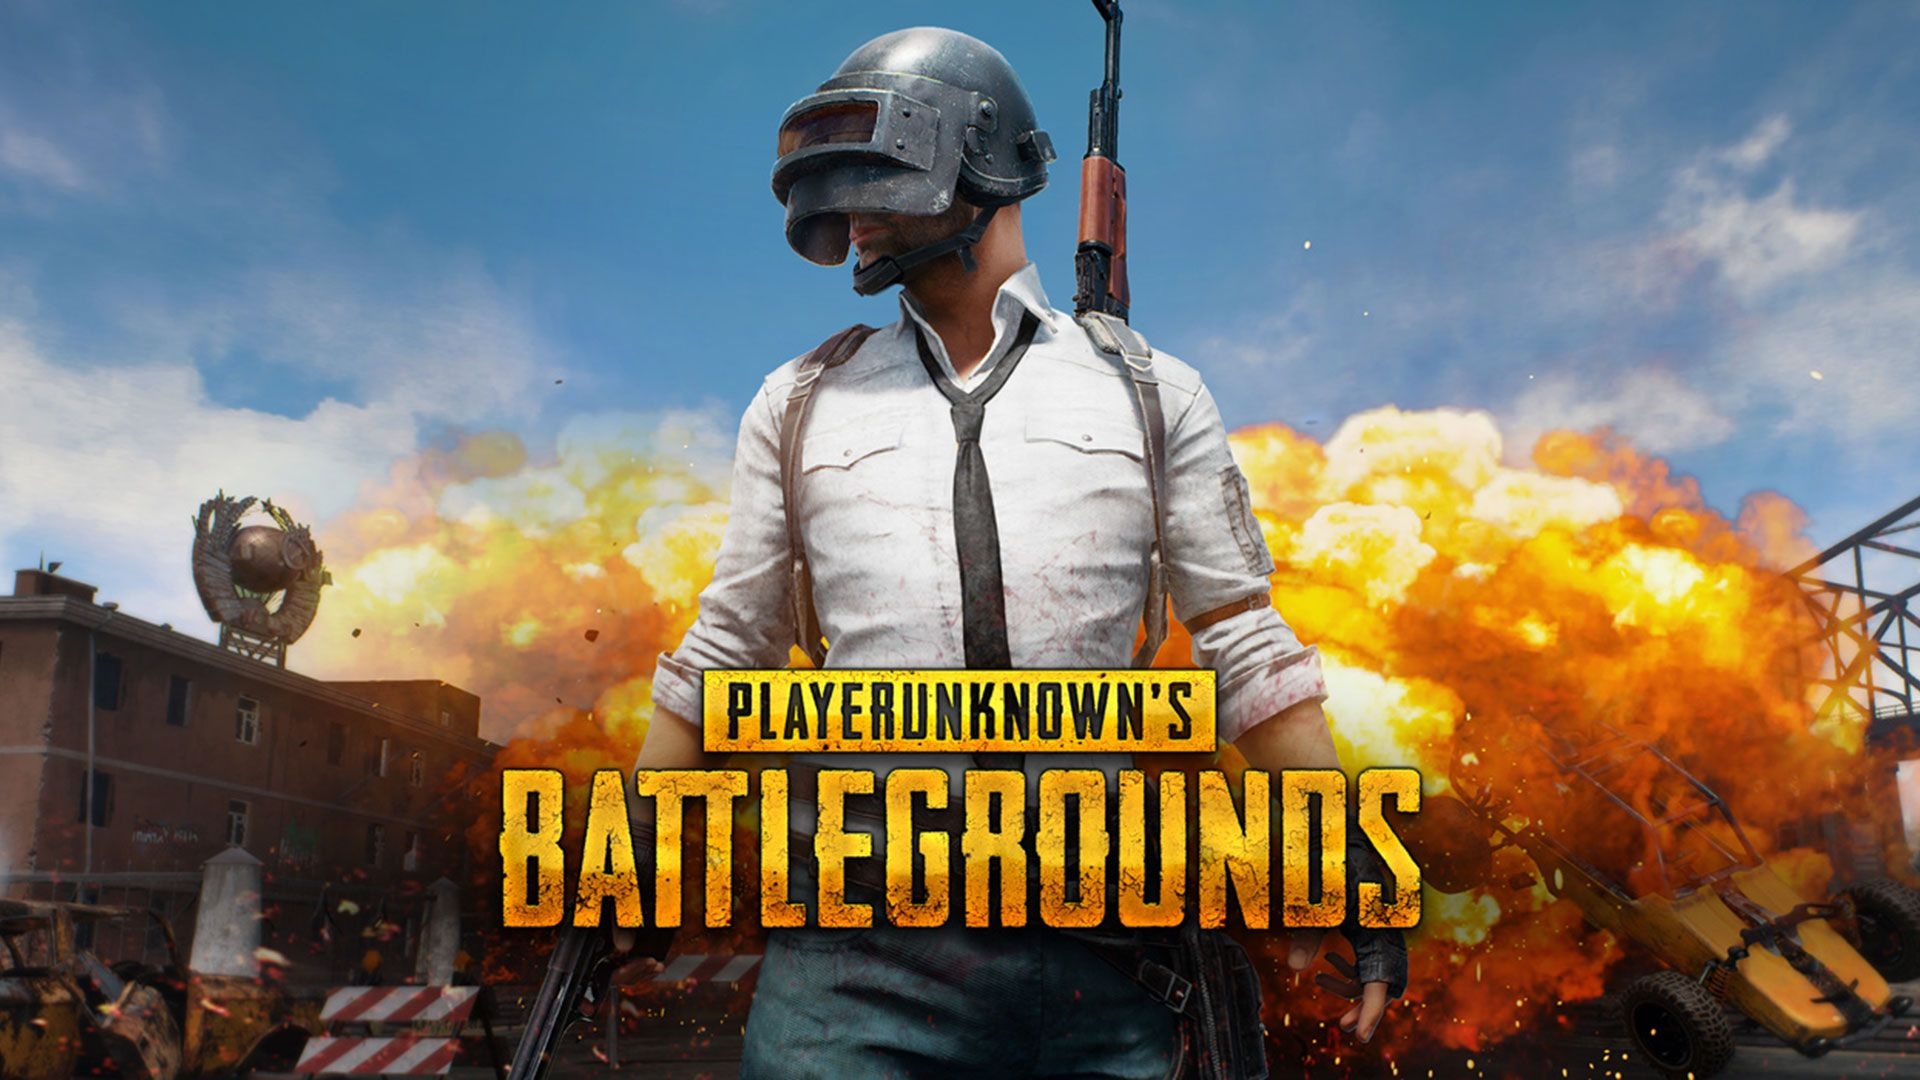 Pubg Wallpaper S7 Edge: Pubg Wallpapers Full Hd On Wallpaper 1080p HD